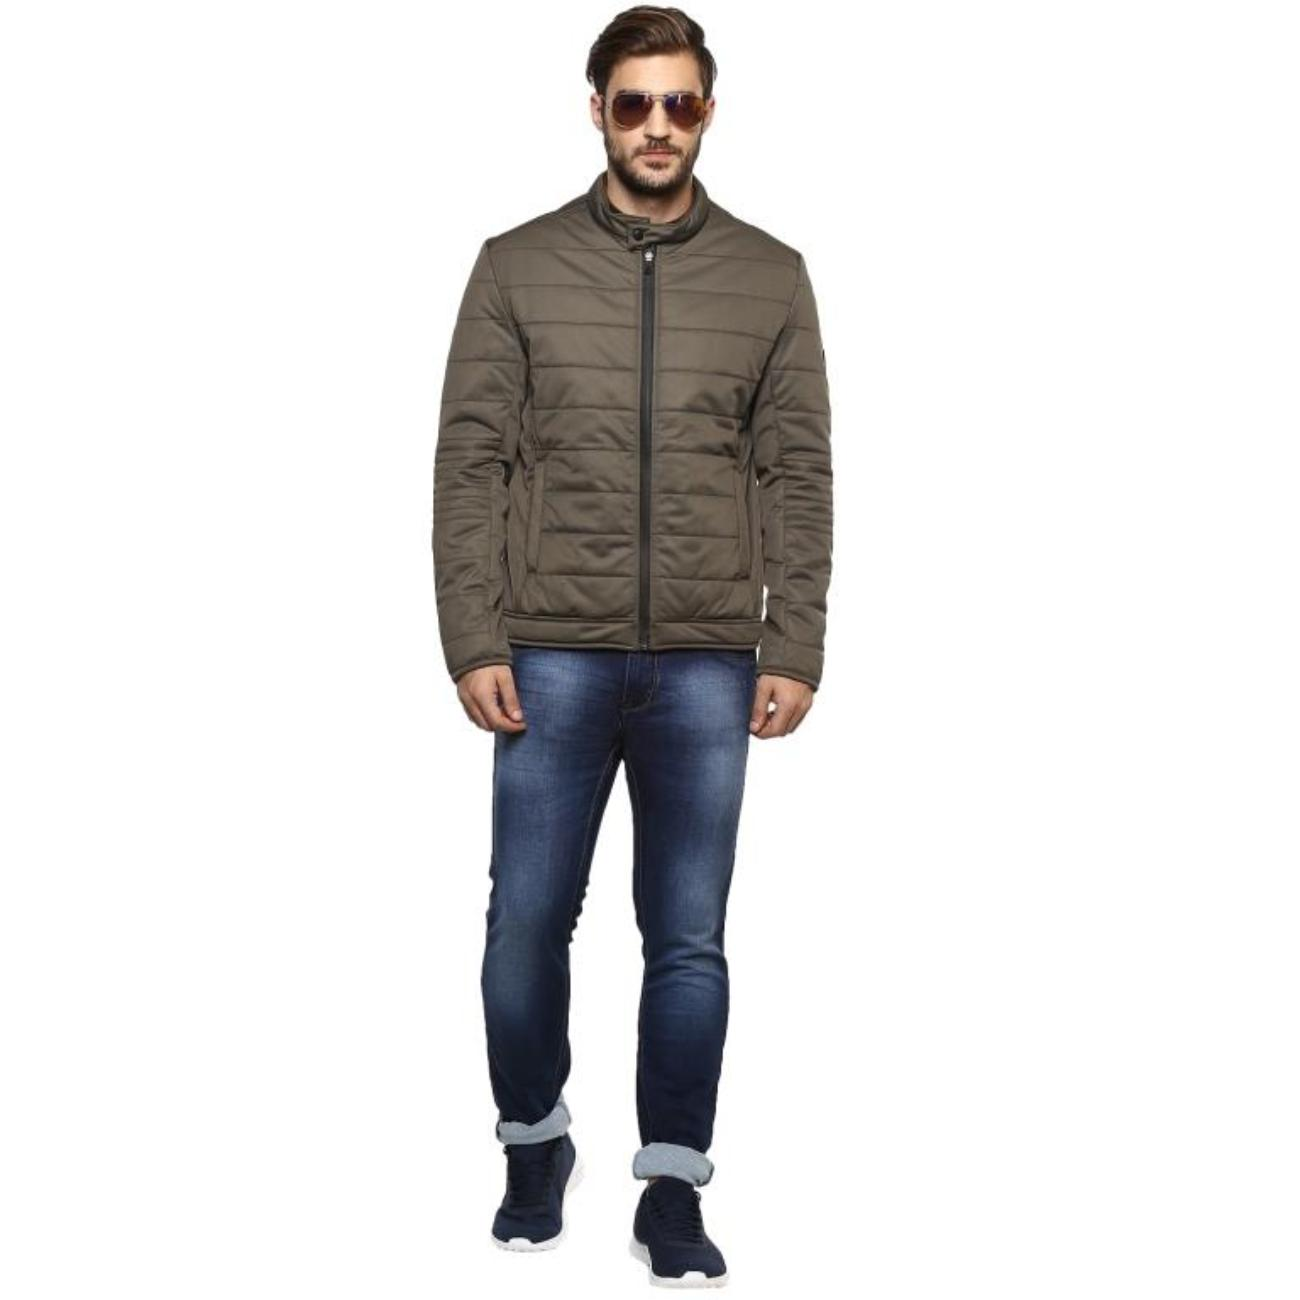 Men's Olive Jacket at Red Chief